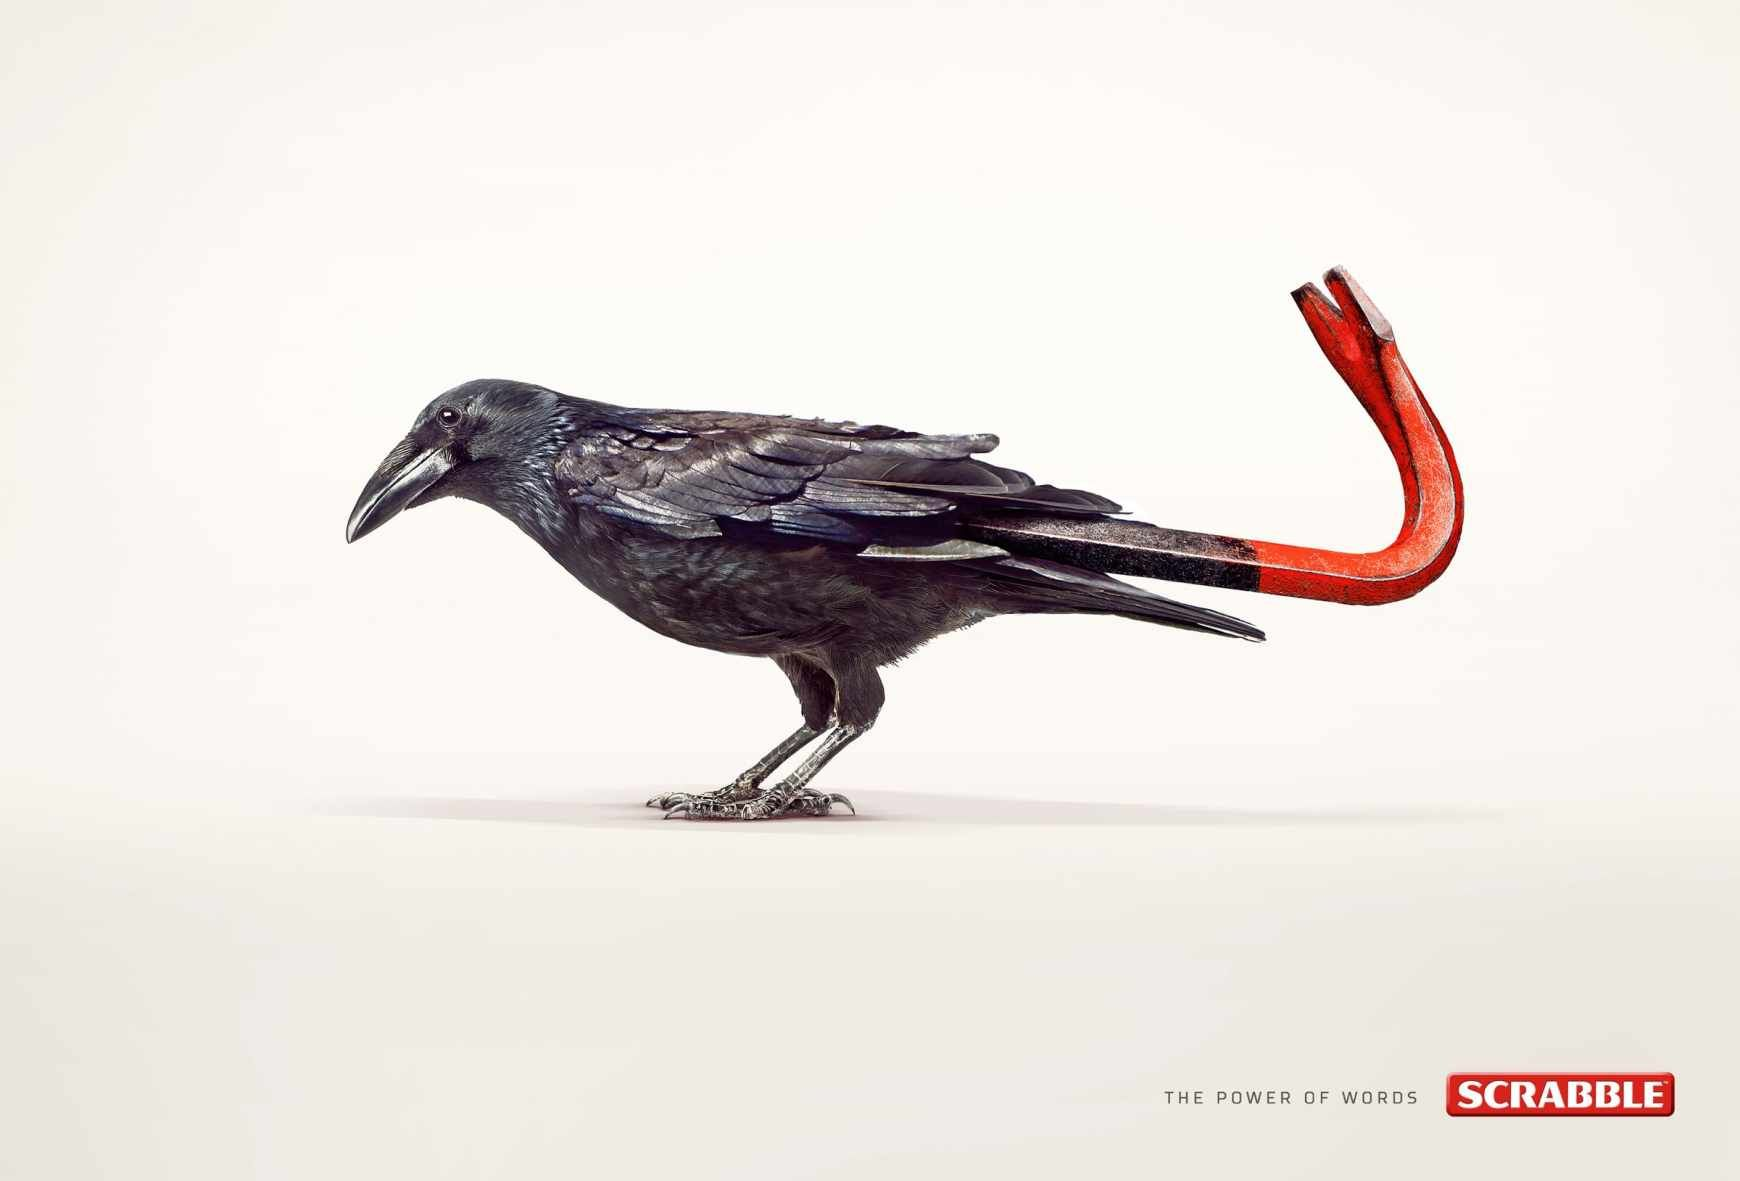 Scrabble - The Power of Words: Crow-bar